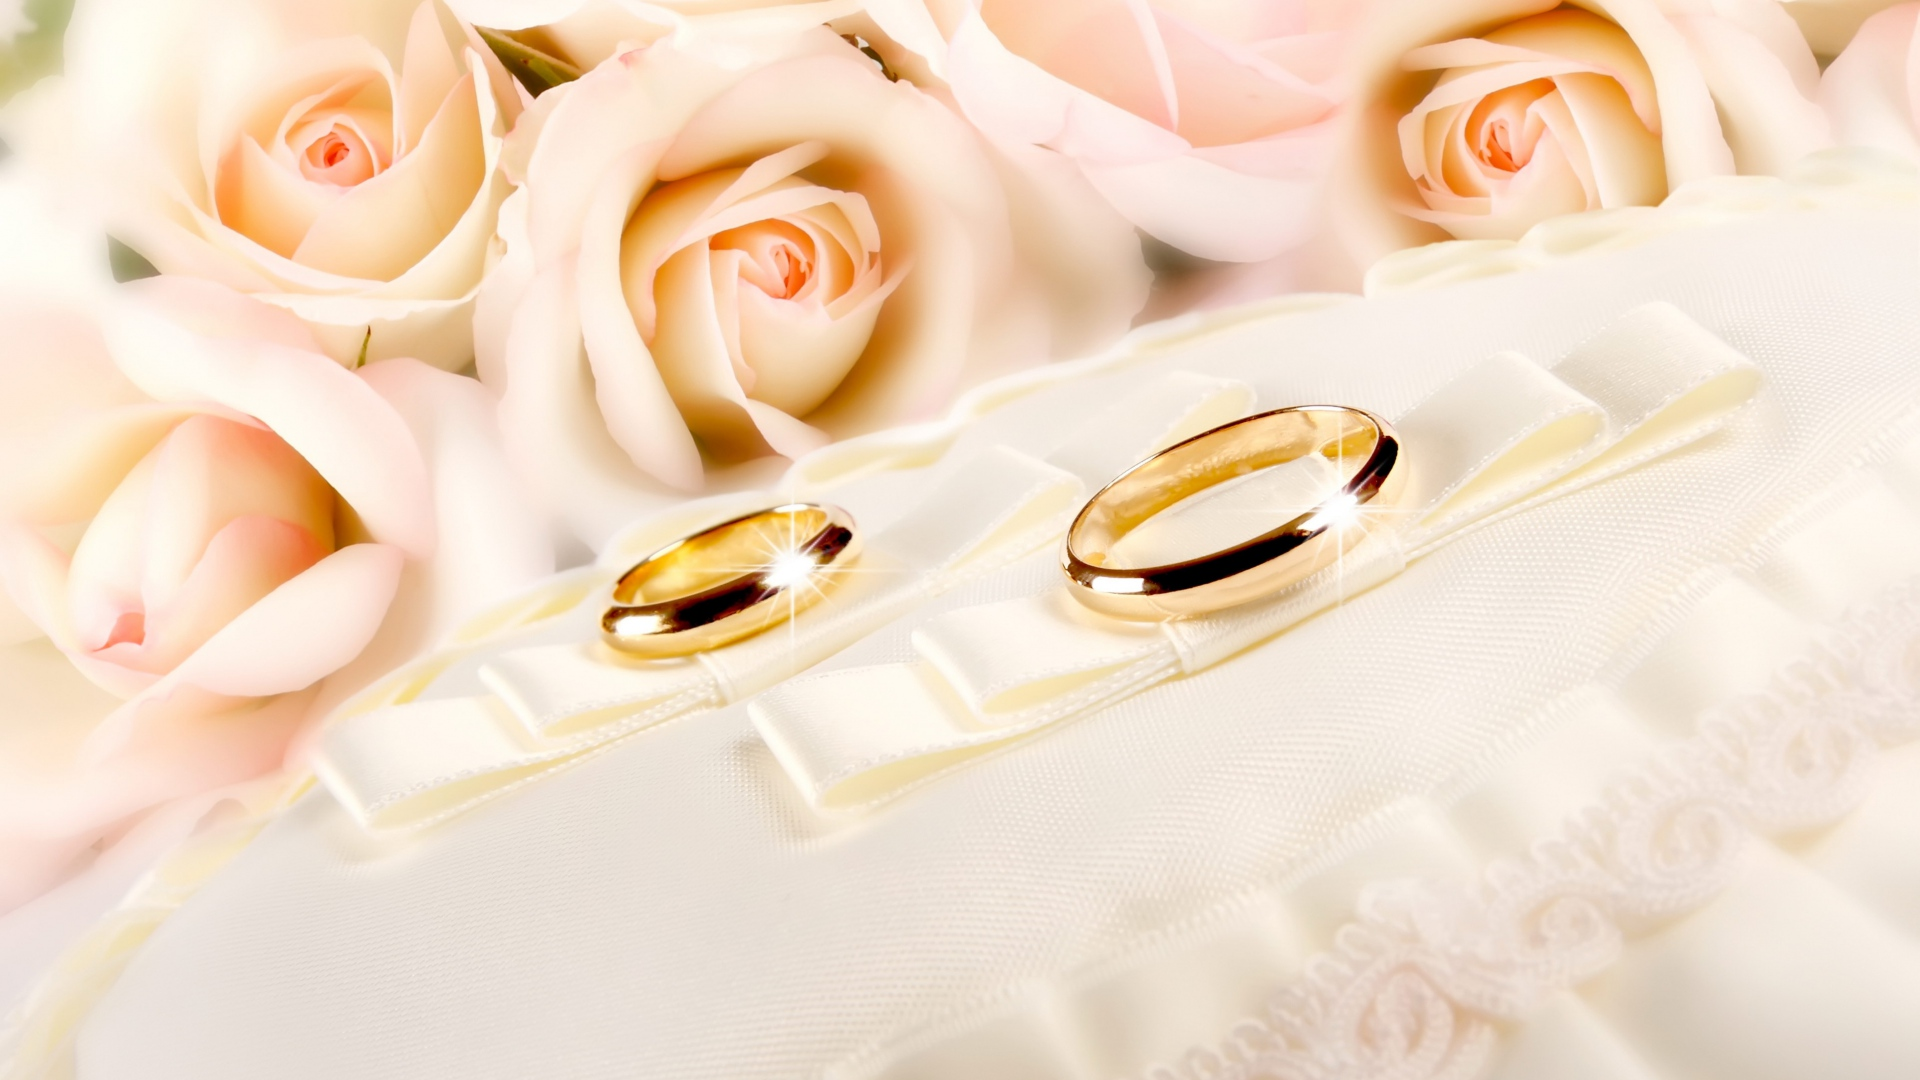 wedding wallpaper 1920x1080 44215